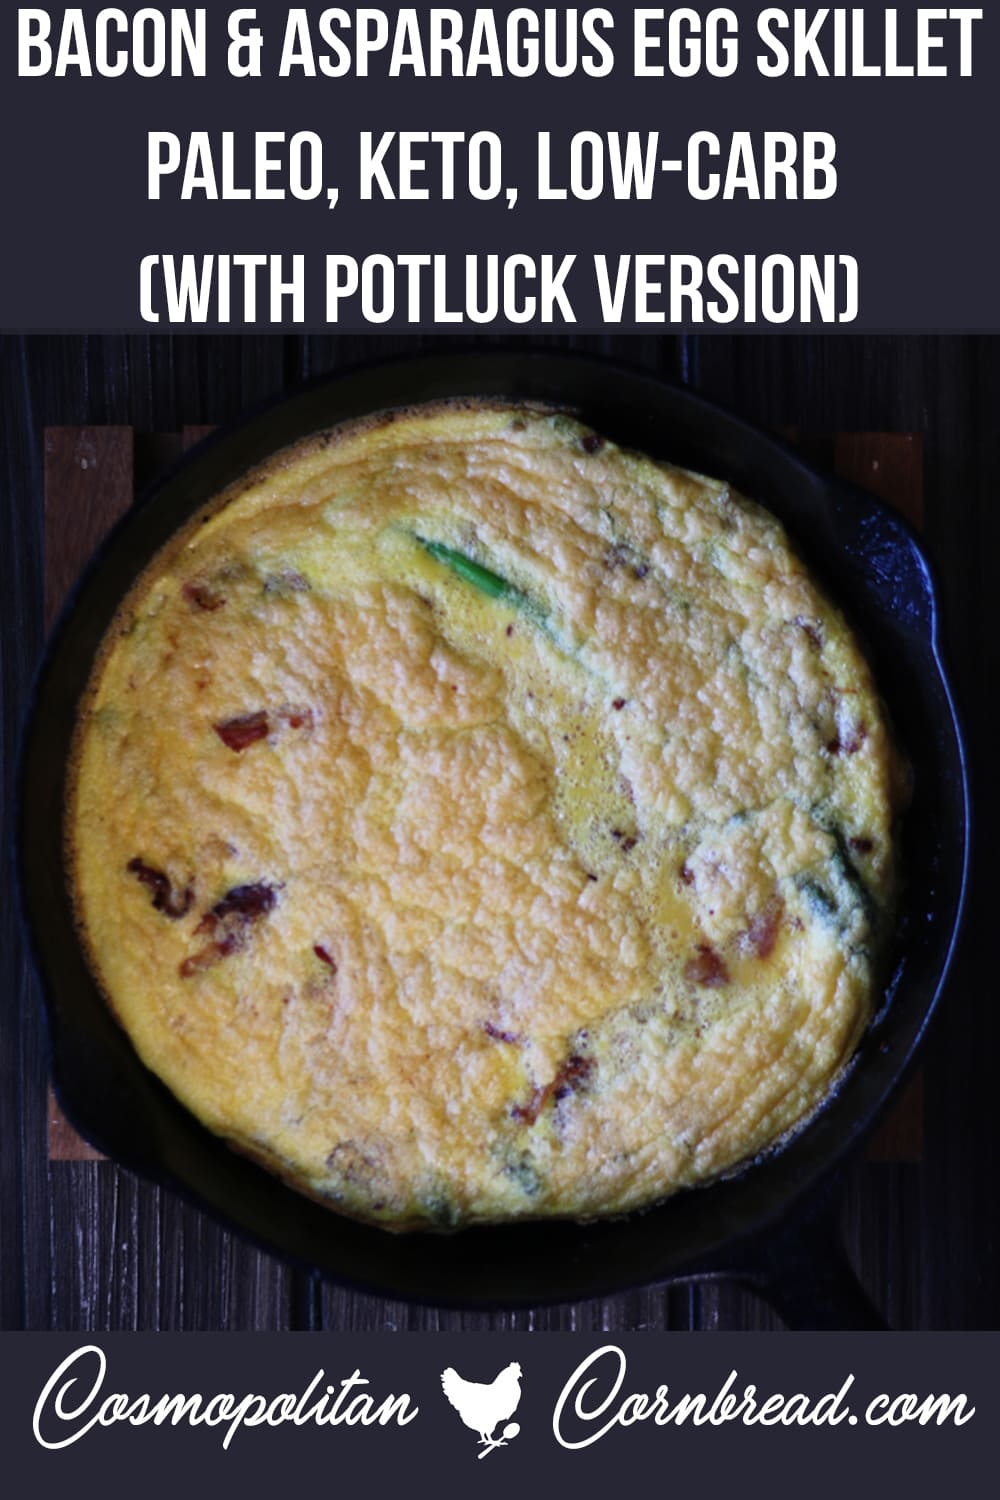 Bacon & Asparagus Egg Skillet   Paleo, Keto, Low-Carb (With Potluck Version)